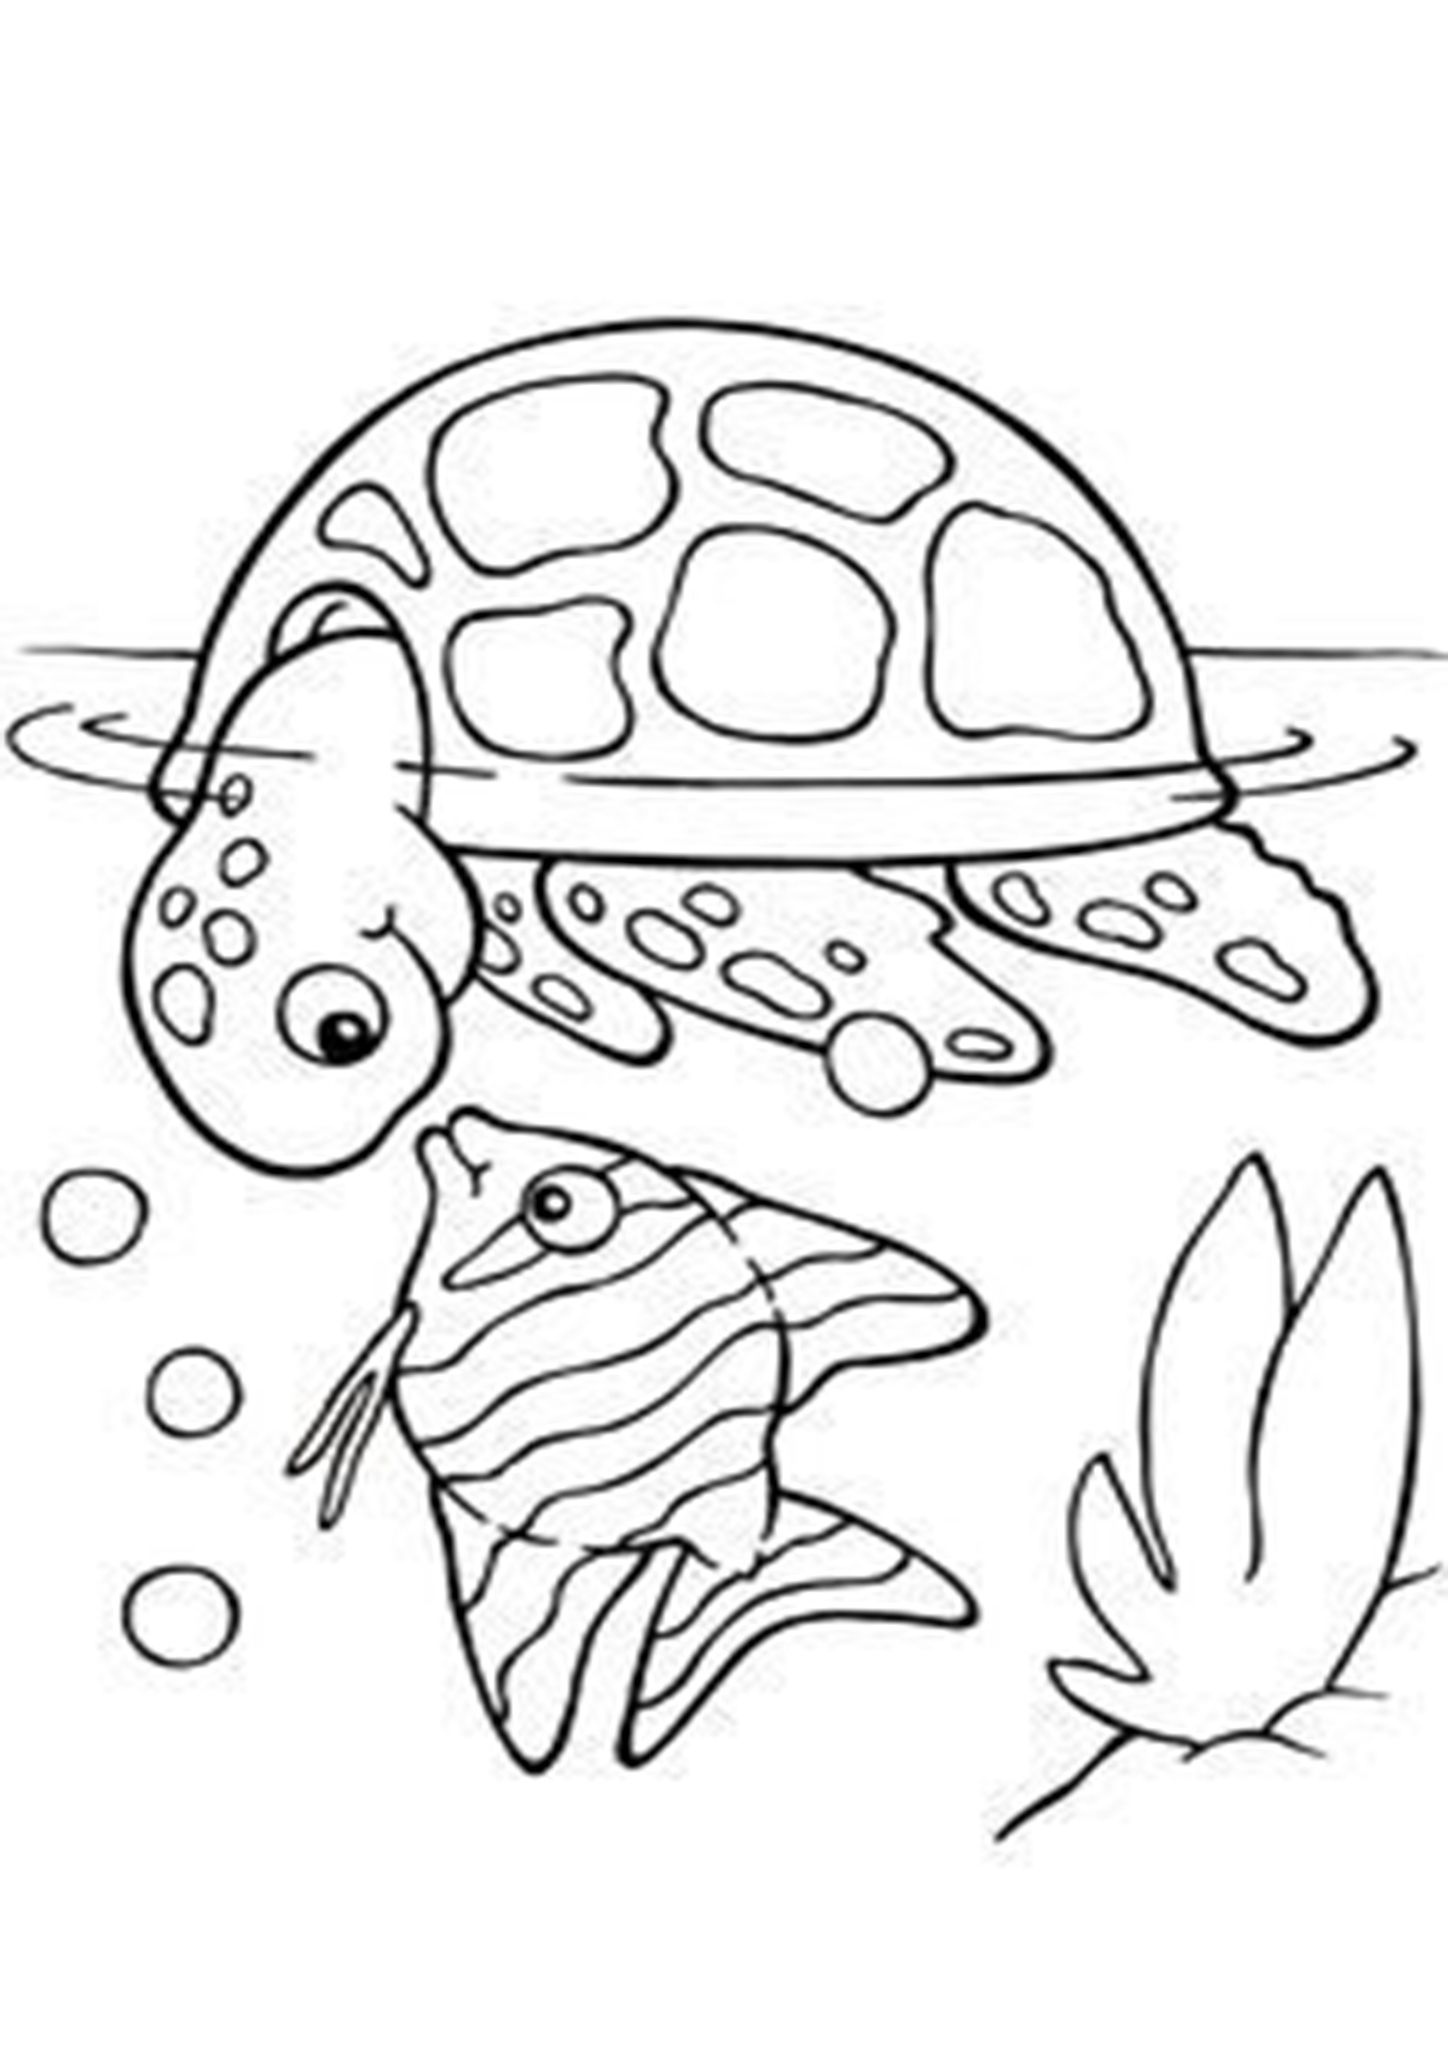 Free Easy To Print Fish Coloring Pages In 2020 Turtle Coloring Pages Animal Coloring Pages Fish Coloring Page